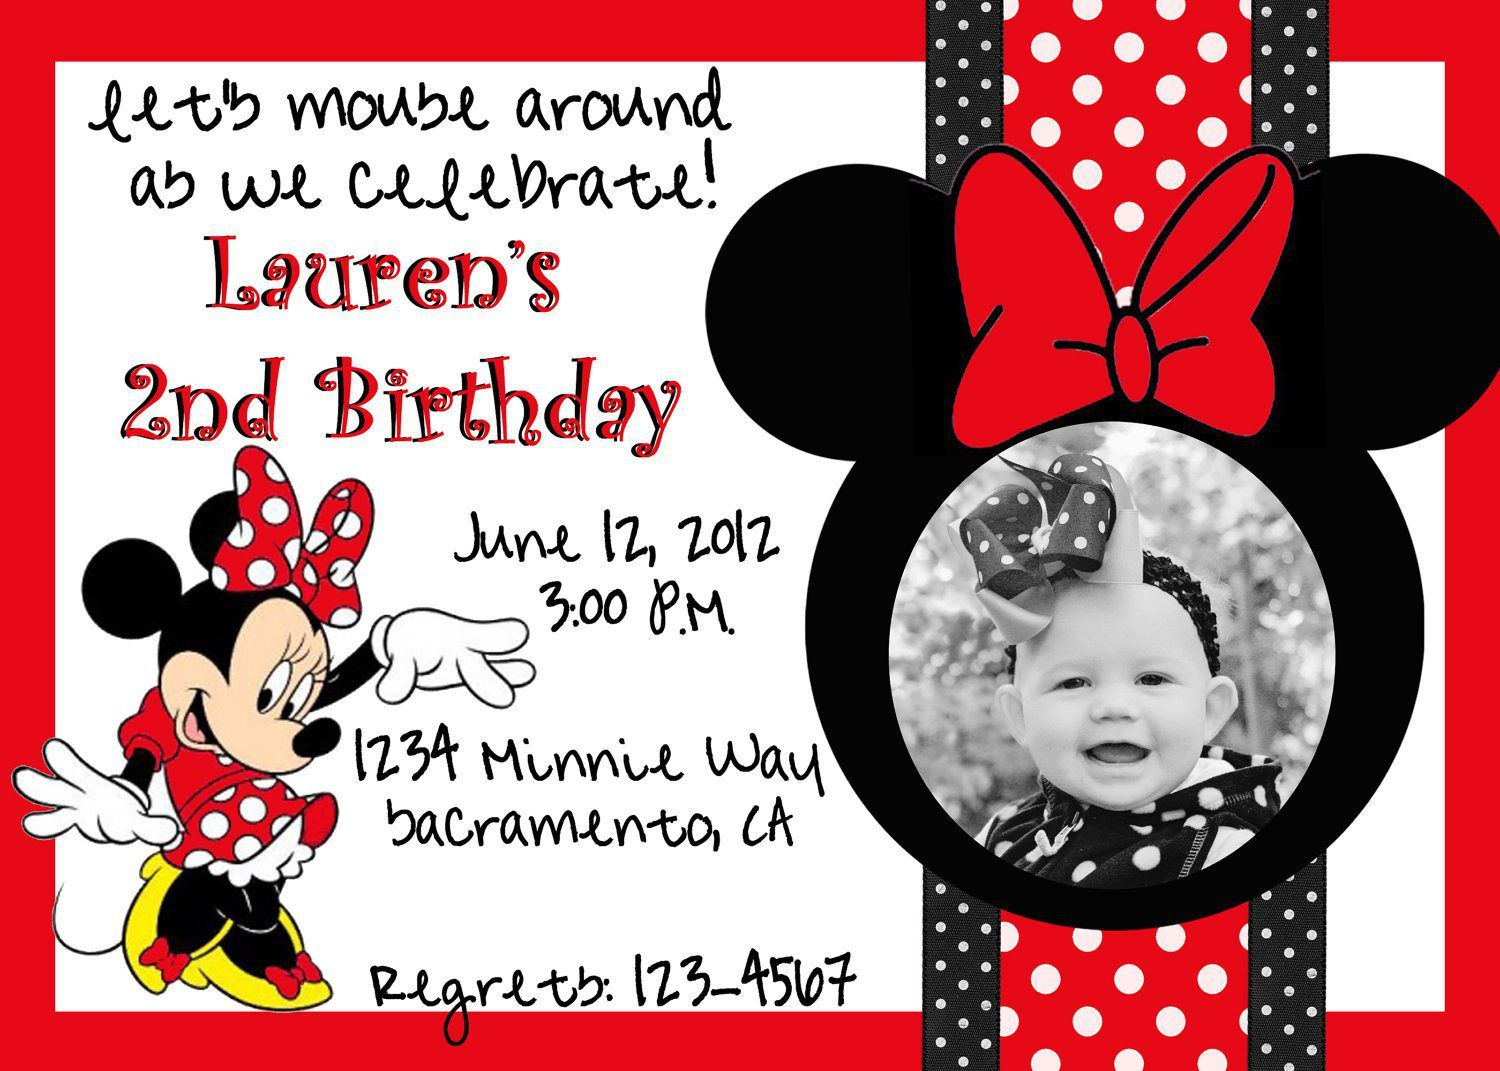 Minnie Mouse Birthday Invitations Red Birthday Party Invitations - Minnie mouse birthday invitation images